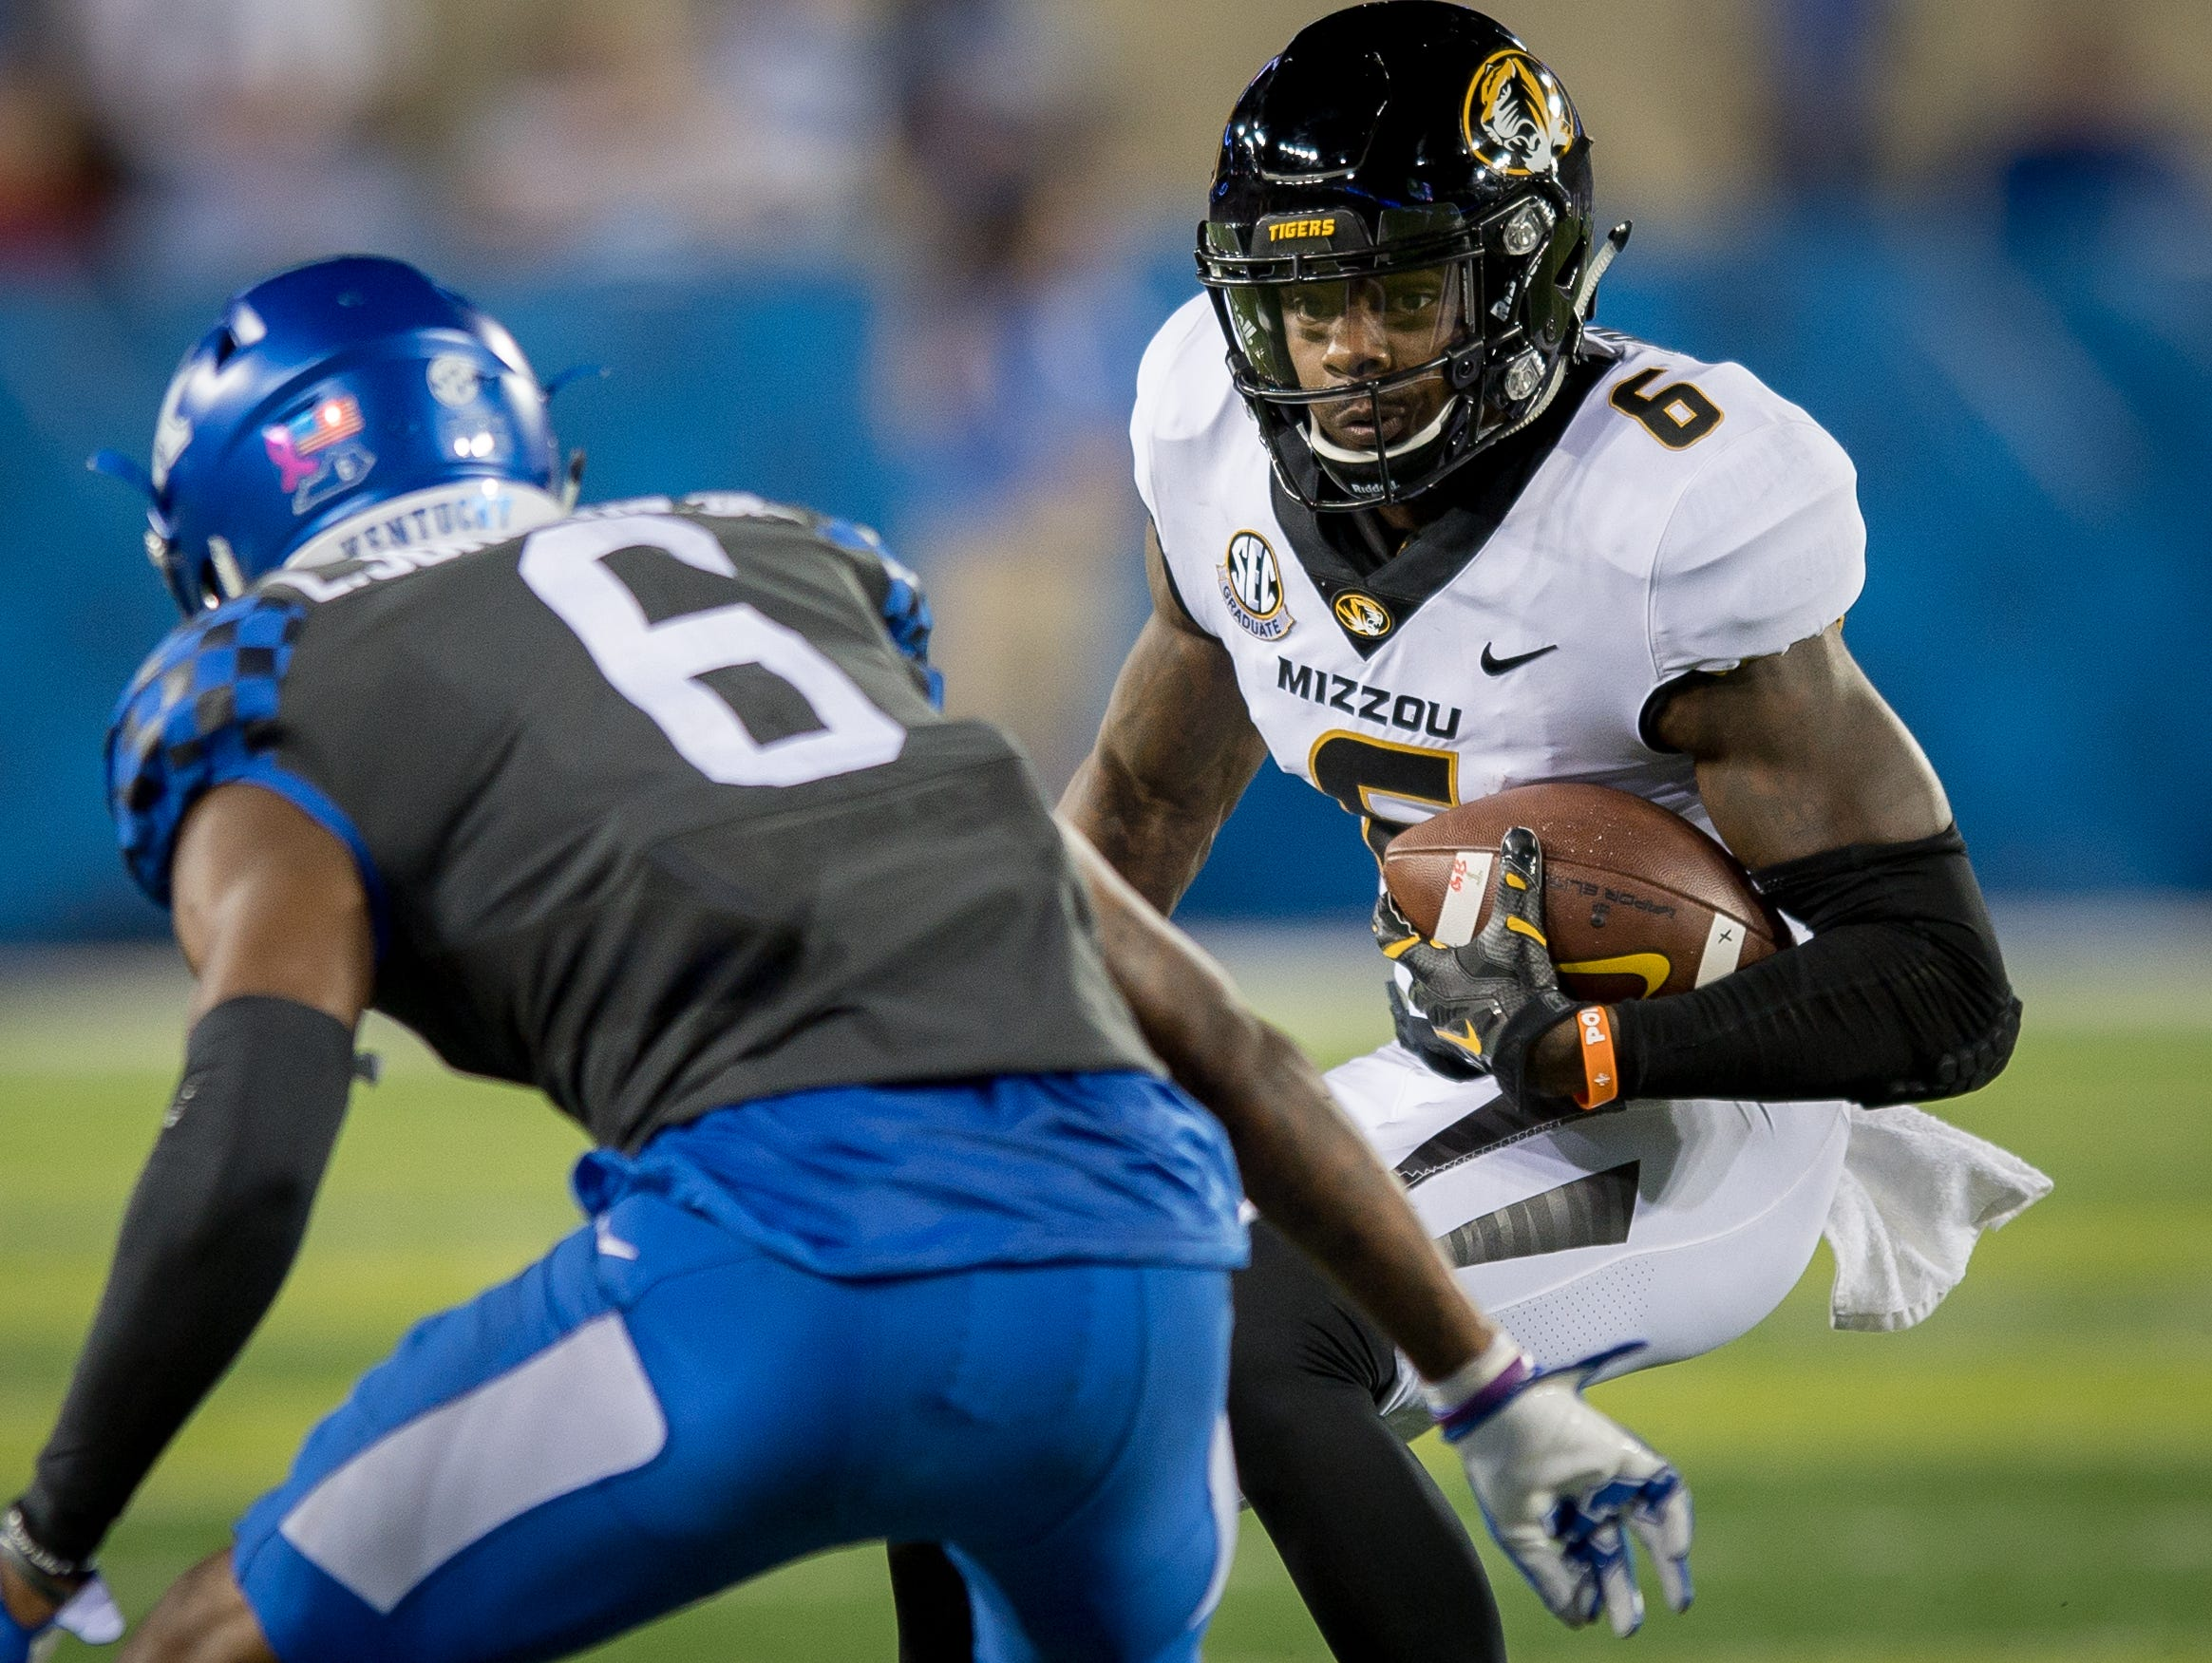 DUPLICATE***Kentucky Wildcats cornerback Lonnie Johnson (6) tackles Missouri Tigers wide receiver J'Mon Moore (6)uring the game at Kroger Field on the campus of the University of Kentucky in Lexington, Saturday, Oct. 7, 2017.